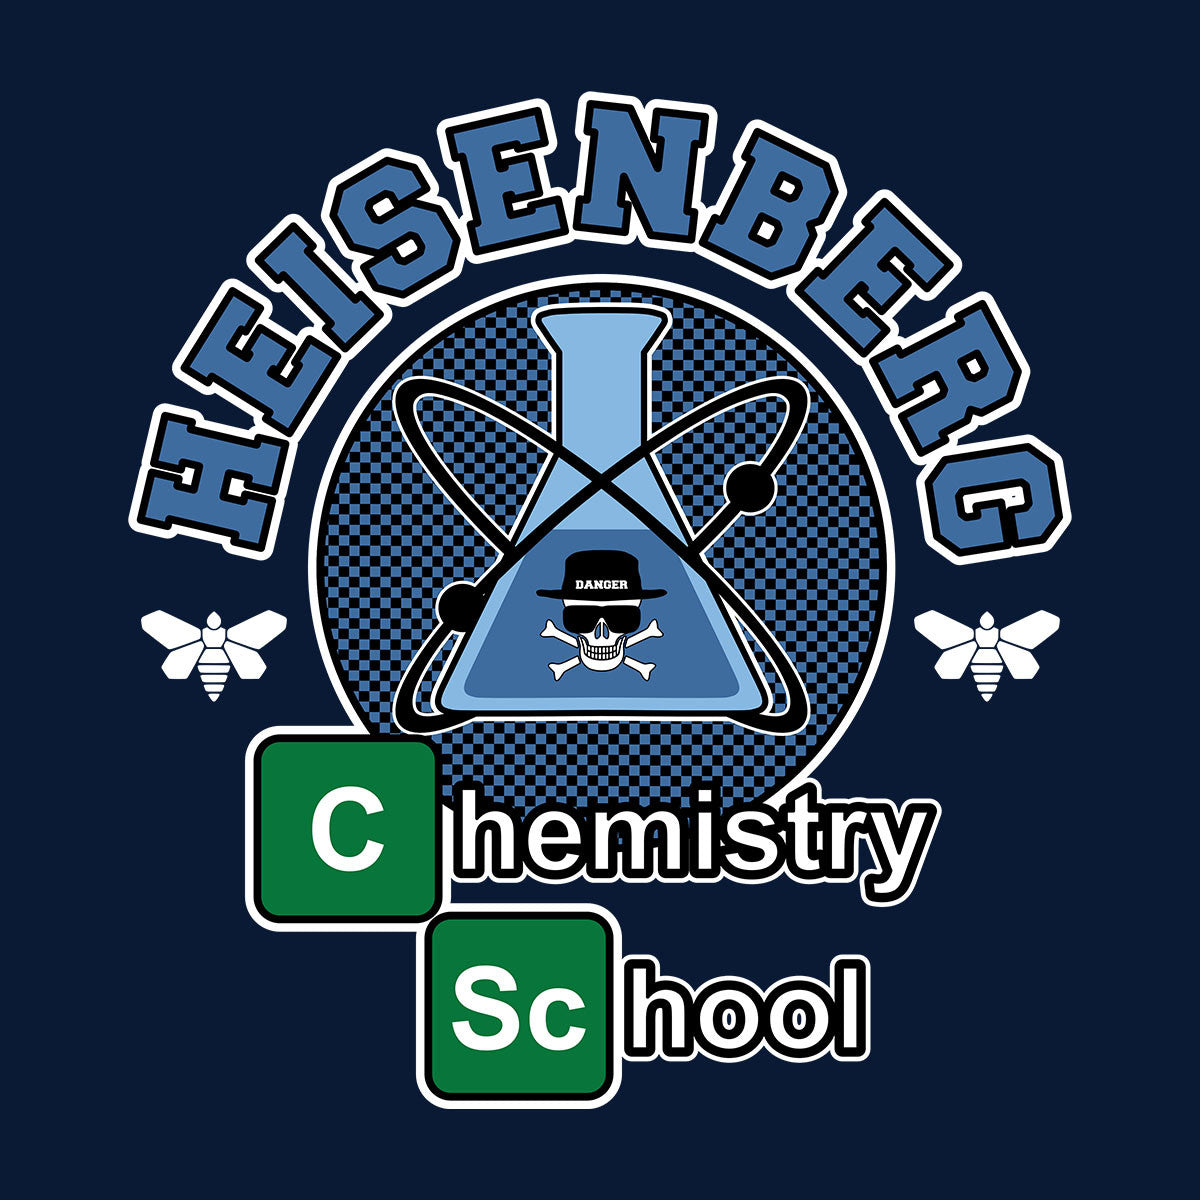 Chemistry School Breaking Bad